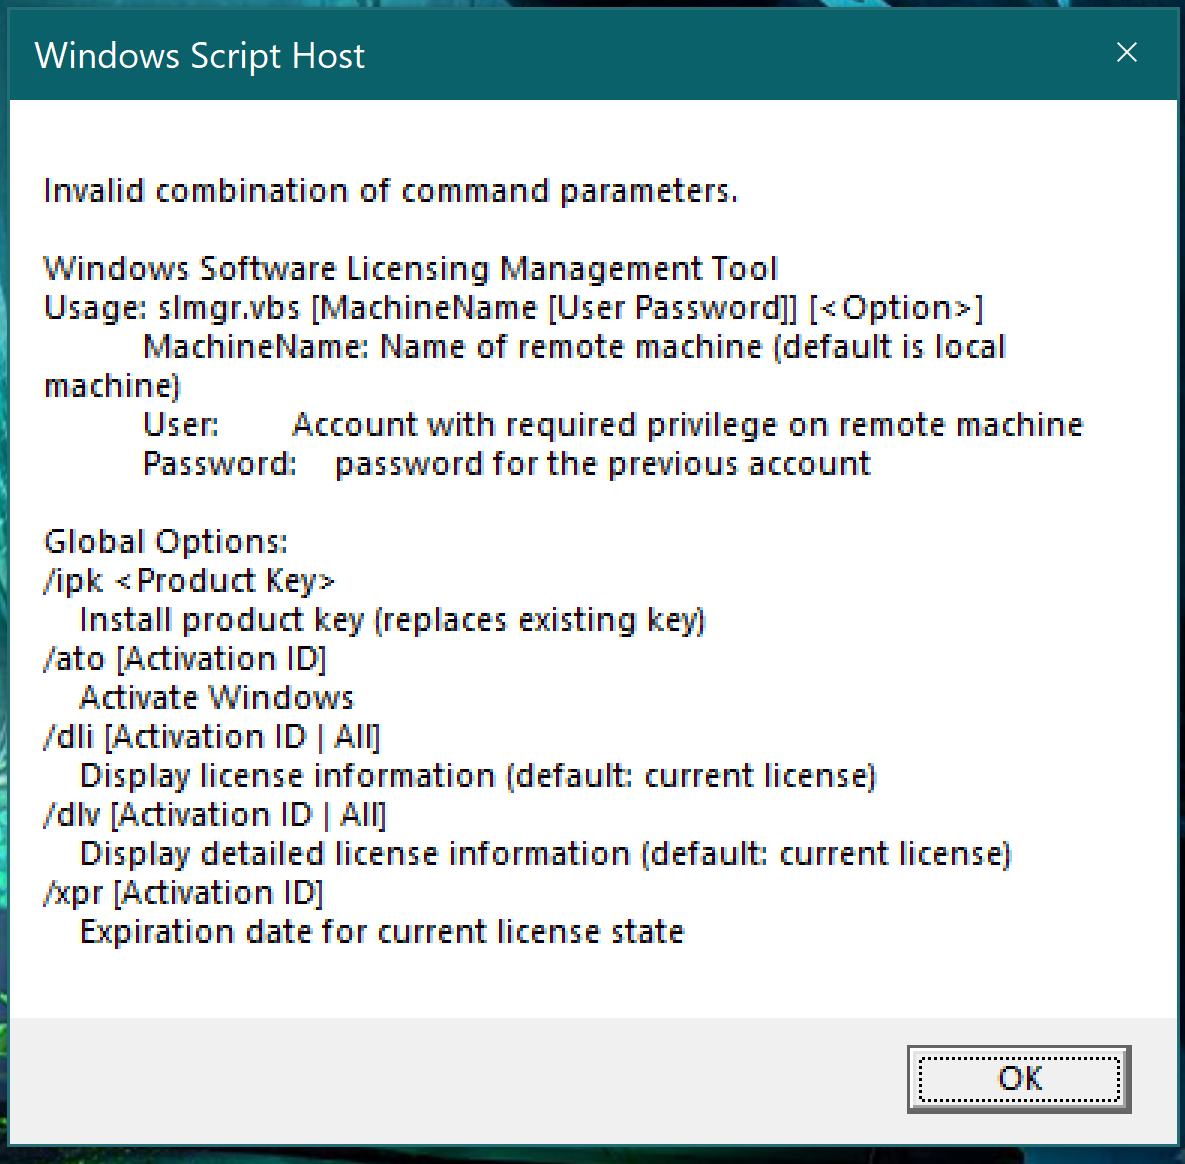 Windows Script Host pop up on startup ever since virus removal and reinstall of windows 10 pro 3895cd8f-2481-47dc-ac4b-c5377e970b3a?upload=true.png